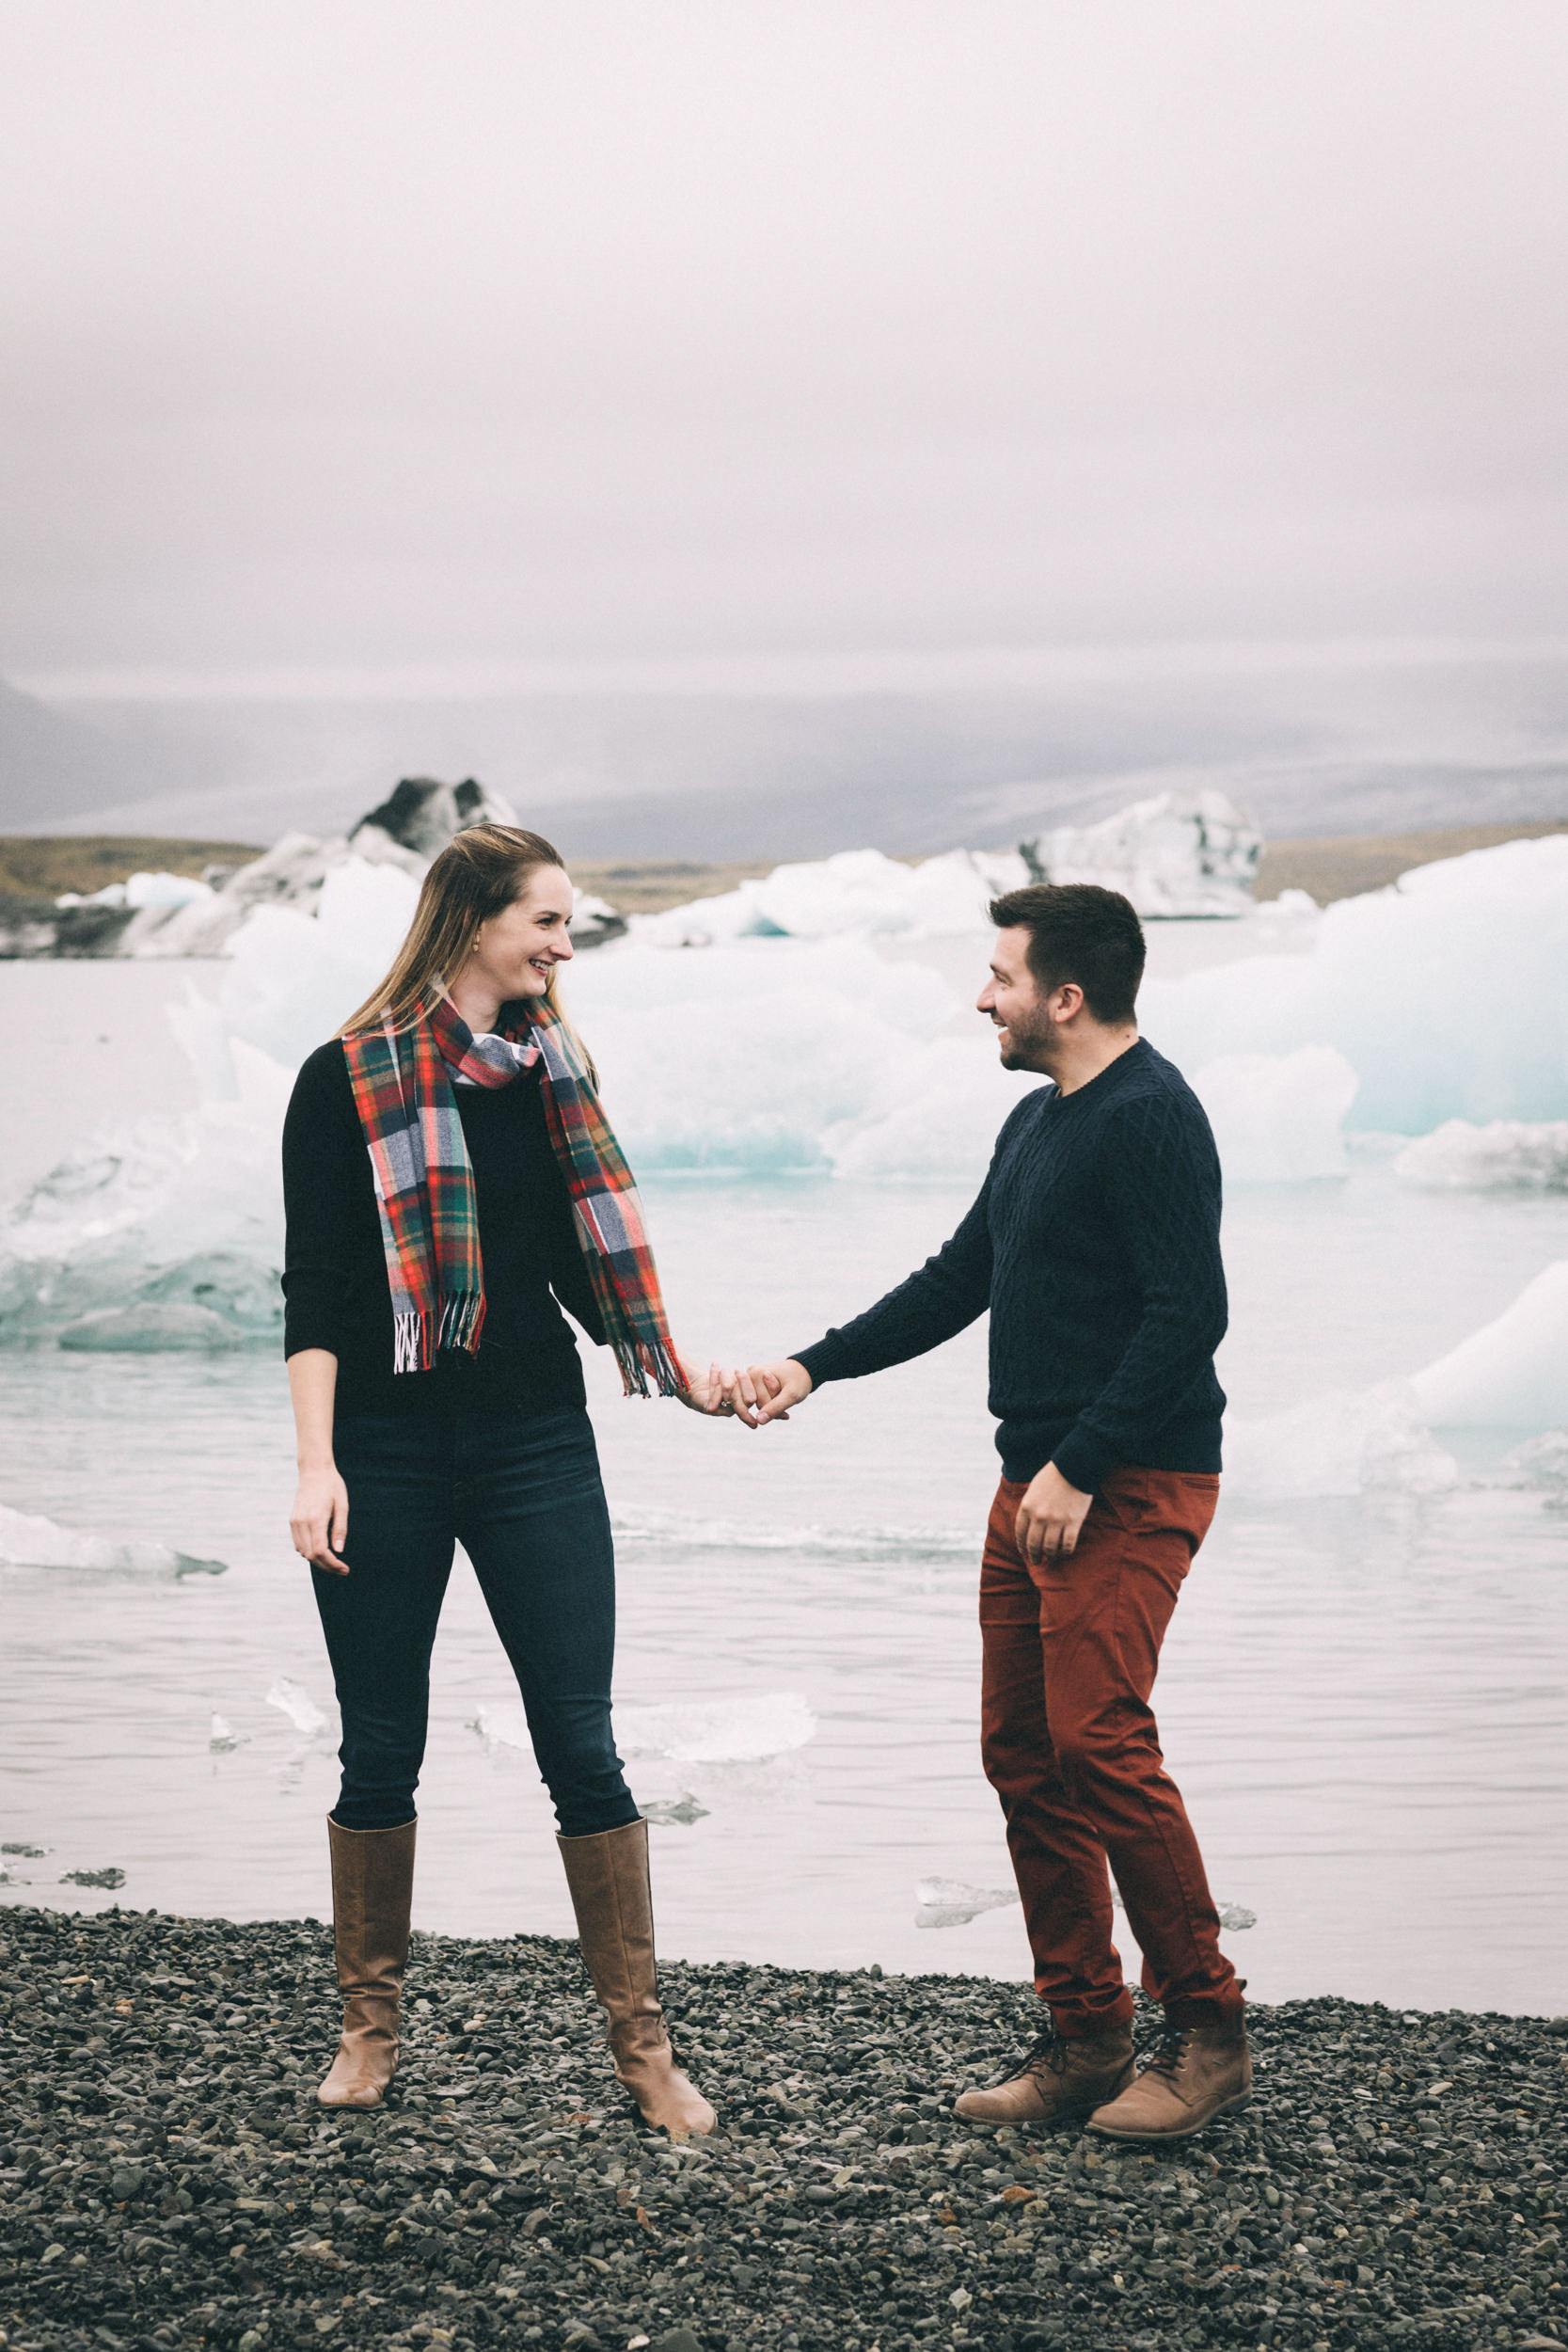 Sarah-Katherine-Davis-Photography-Iceland-Adventure-Elopement-Photographer-Louisville-Kentucky-Wedding-Photographer-Travel-Vik-Beach-Engagement-Session-Cozy-Iceland-South-Coast-263edit.jpg